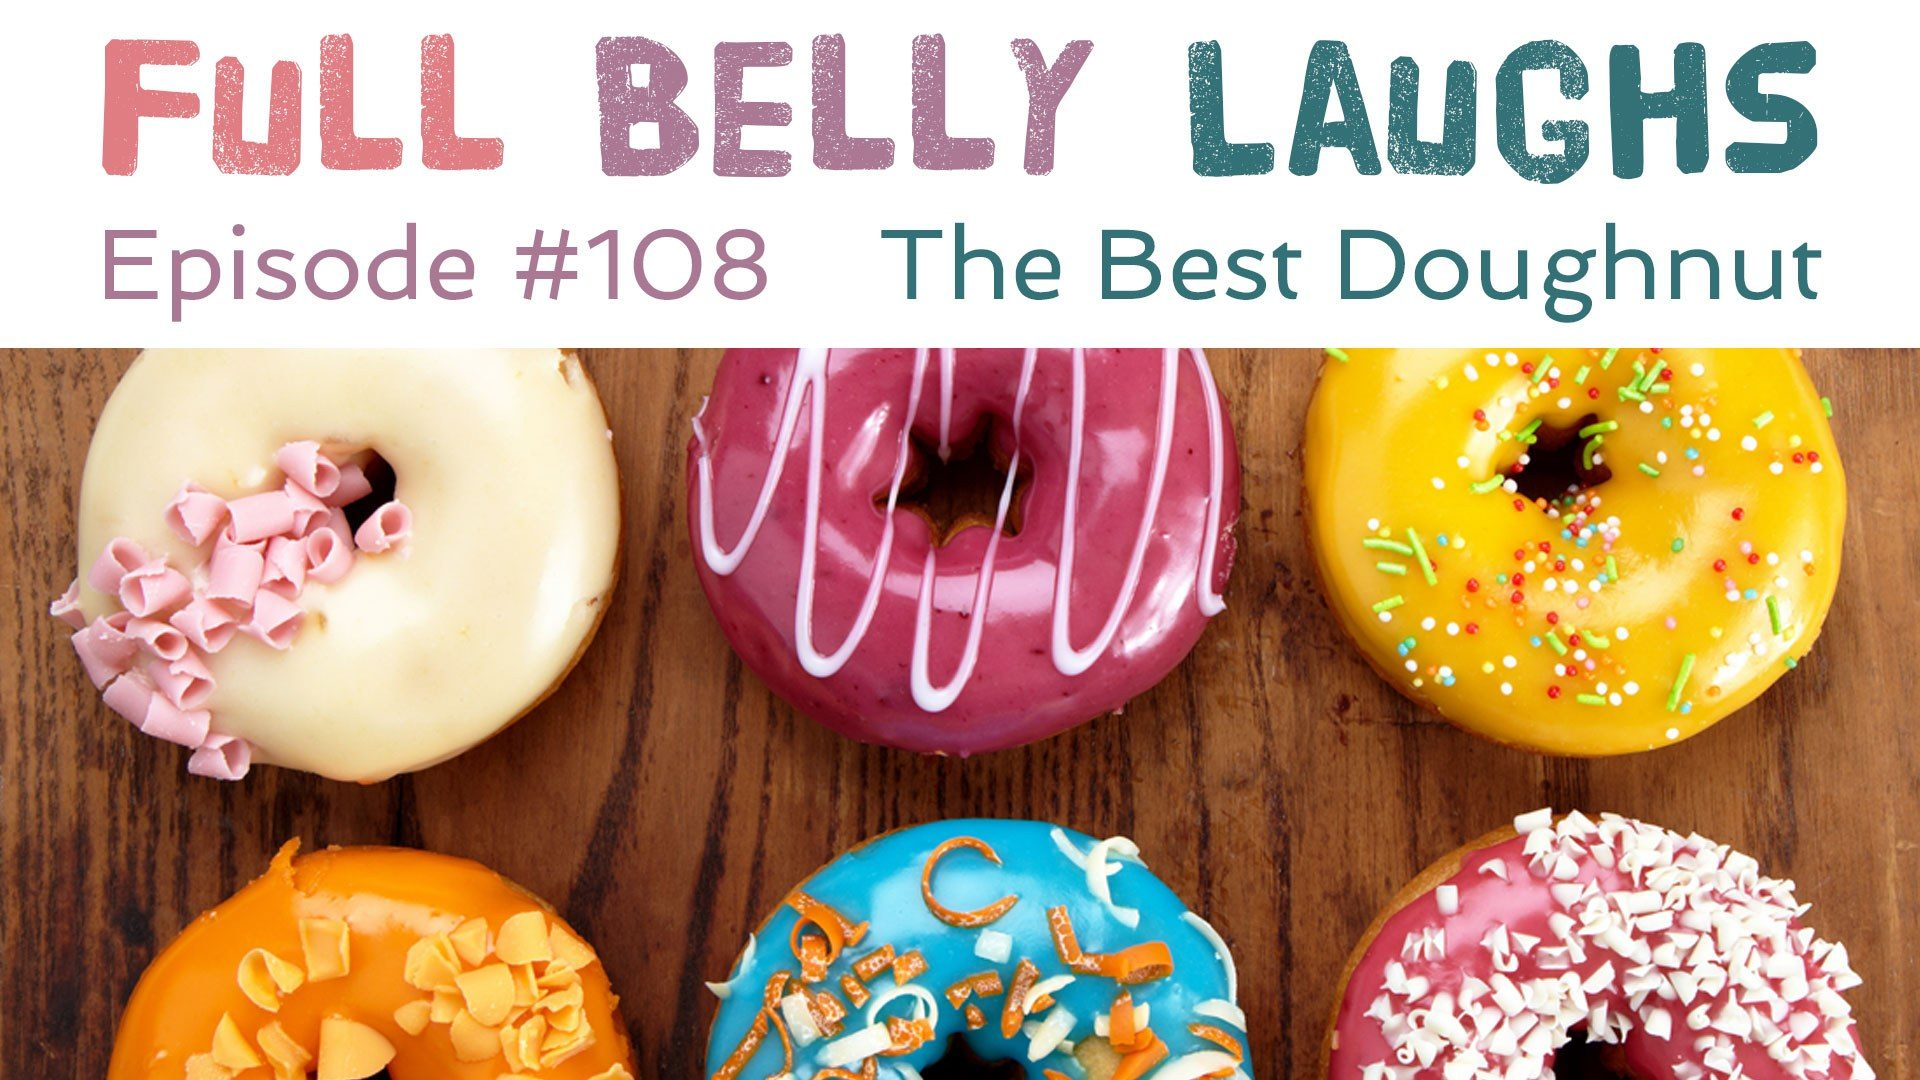 full belly laughs podcast episode 108 best doughnut audio artwork